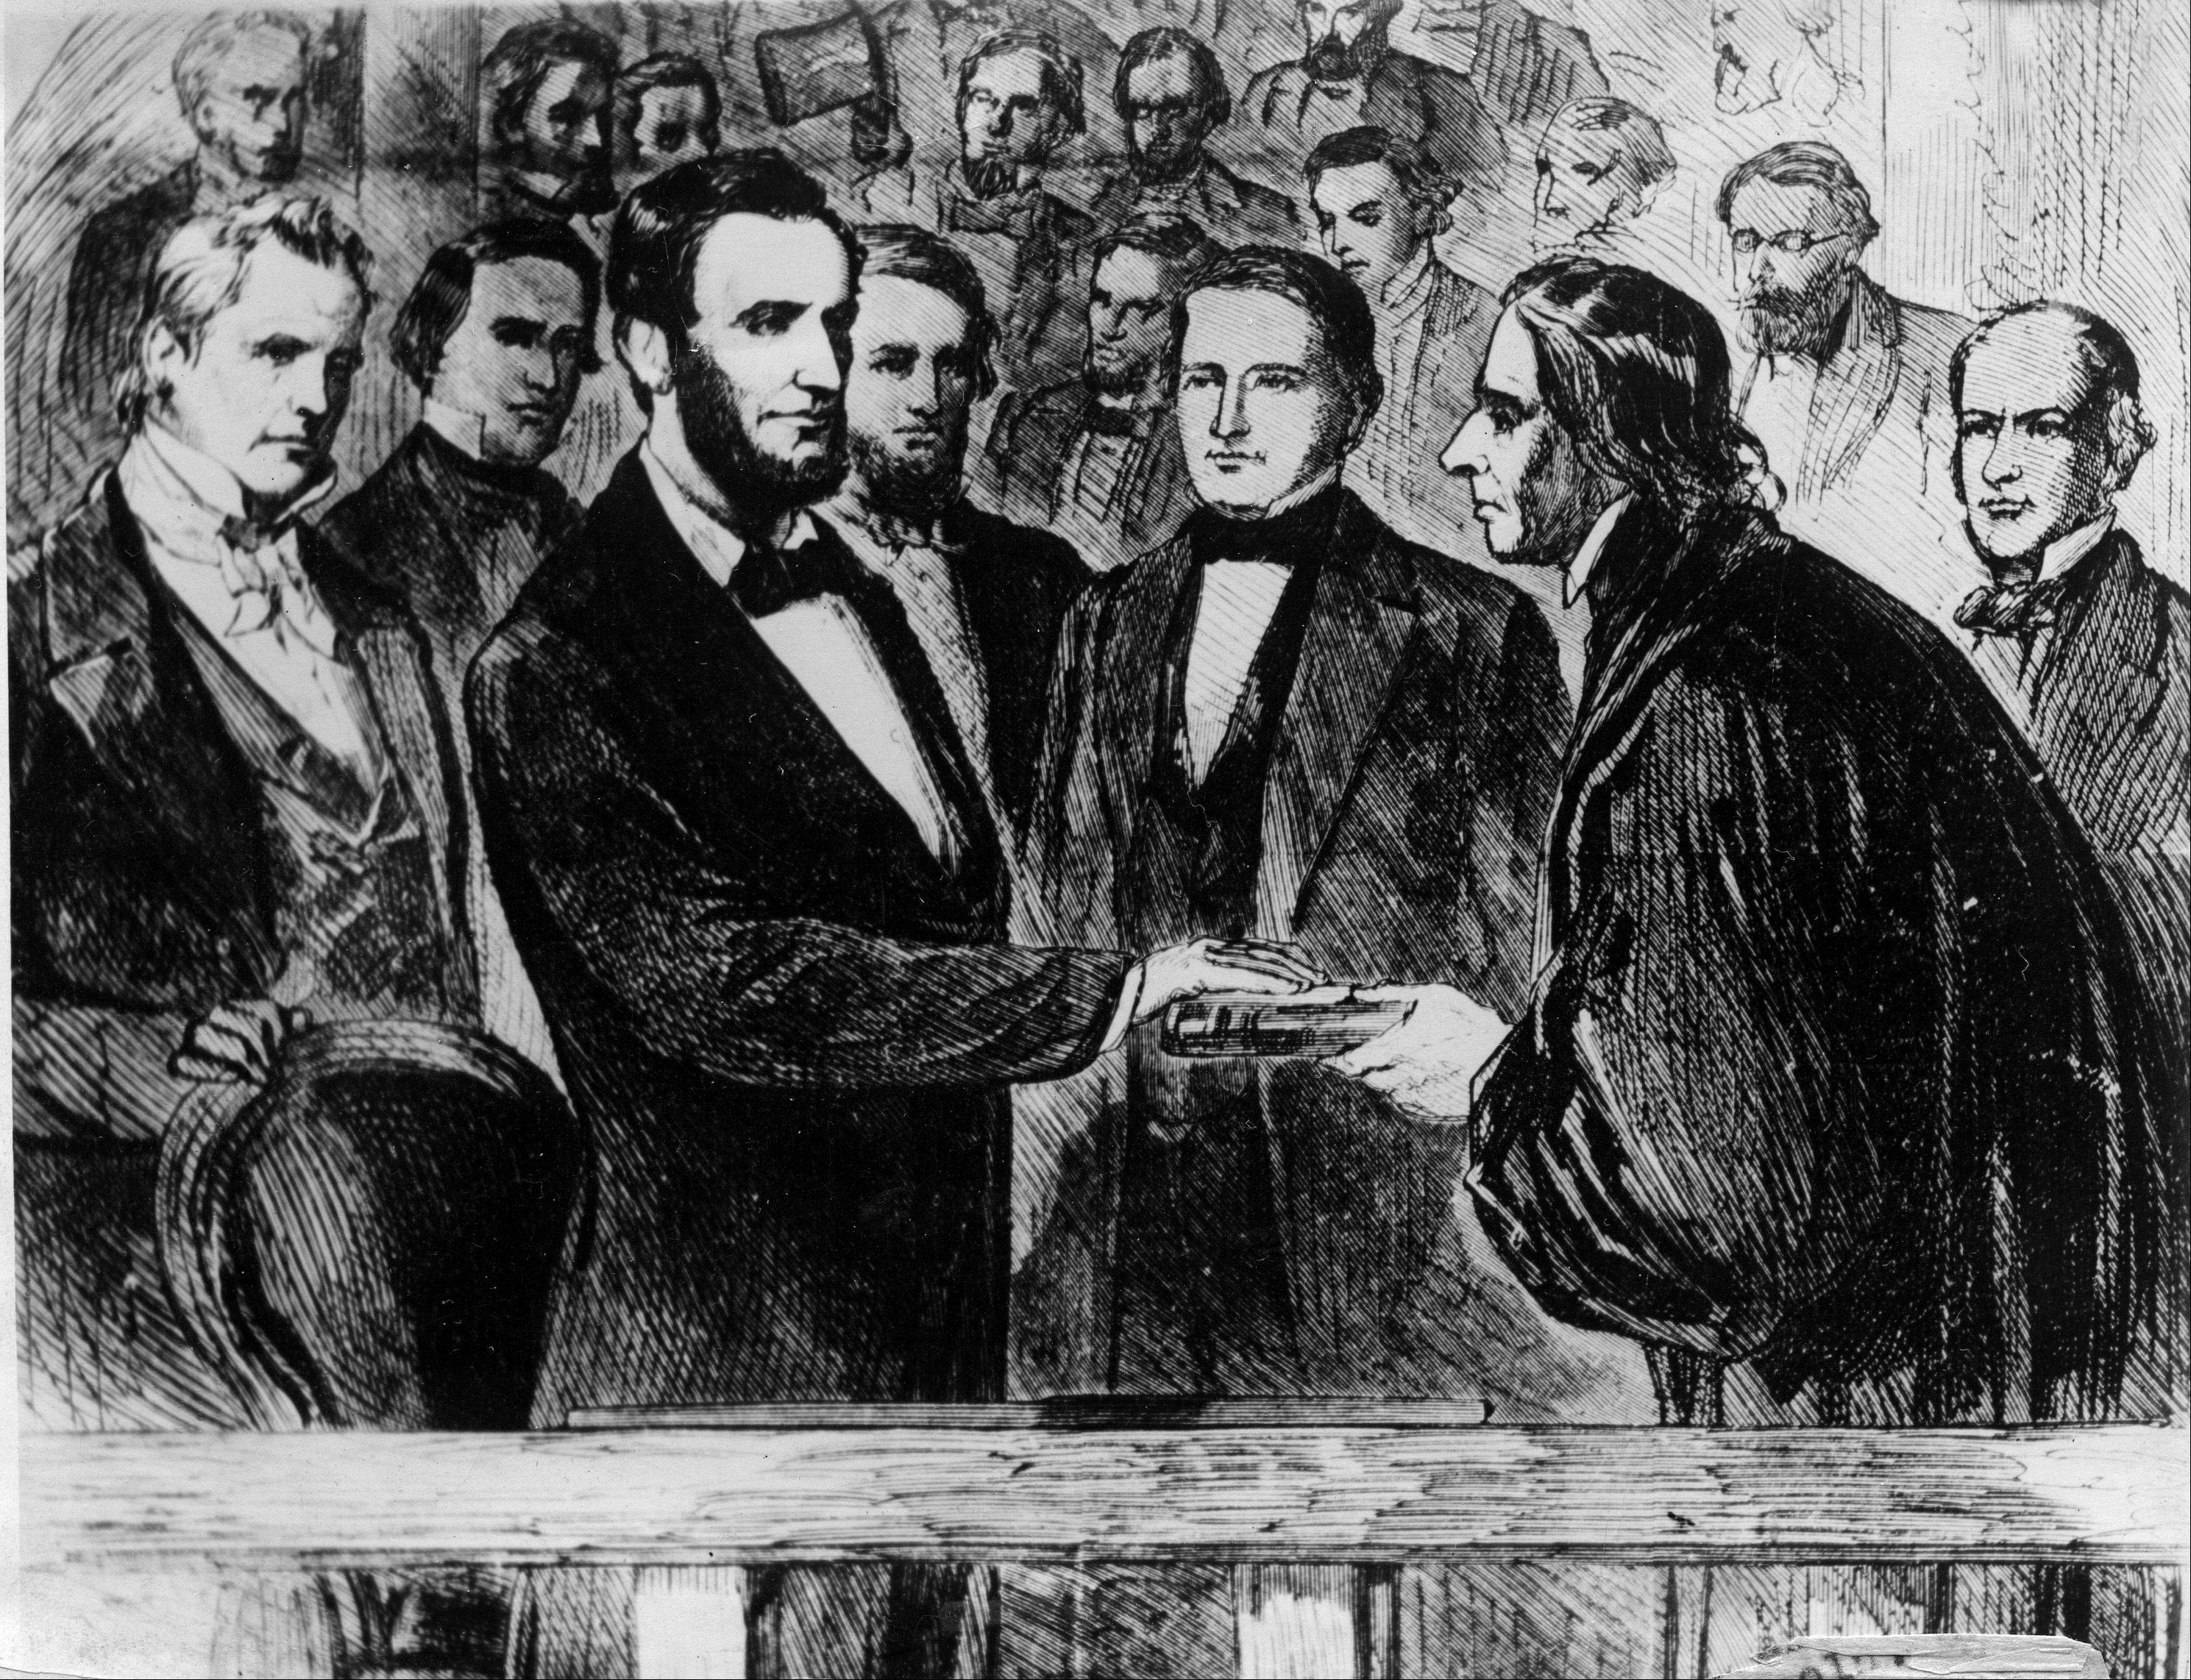 This photograph of a painting shows the second inauguration of Abraham Lincoln as he takes the oath of office as the 16th president of the United States in front of the U.S. Capitol in Washington, D.C., on March 4, 1865. The oath is administered by Chief Justice Salmon P. Chase.